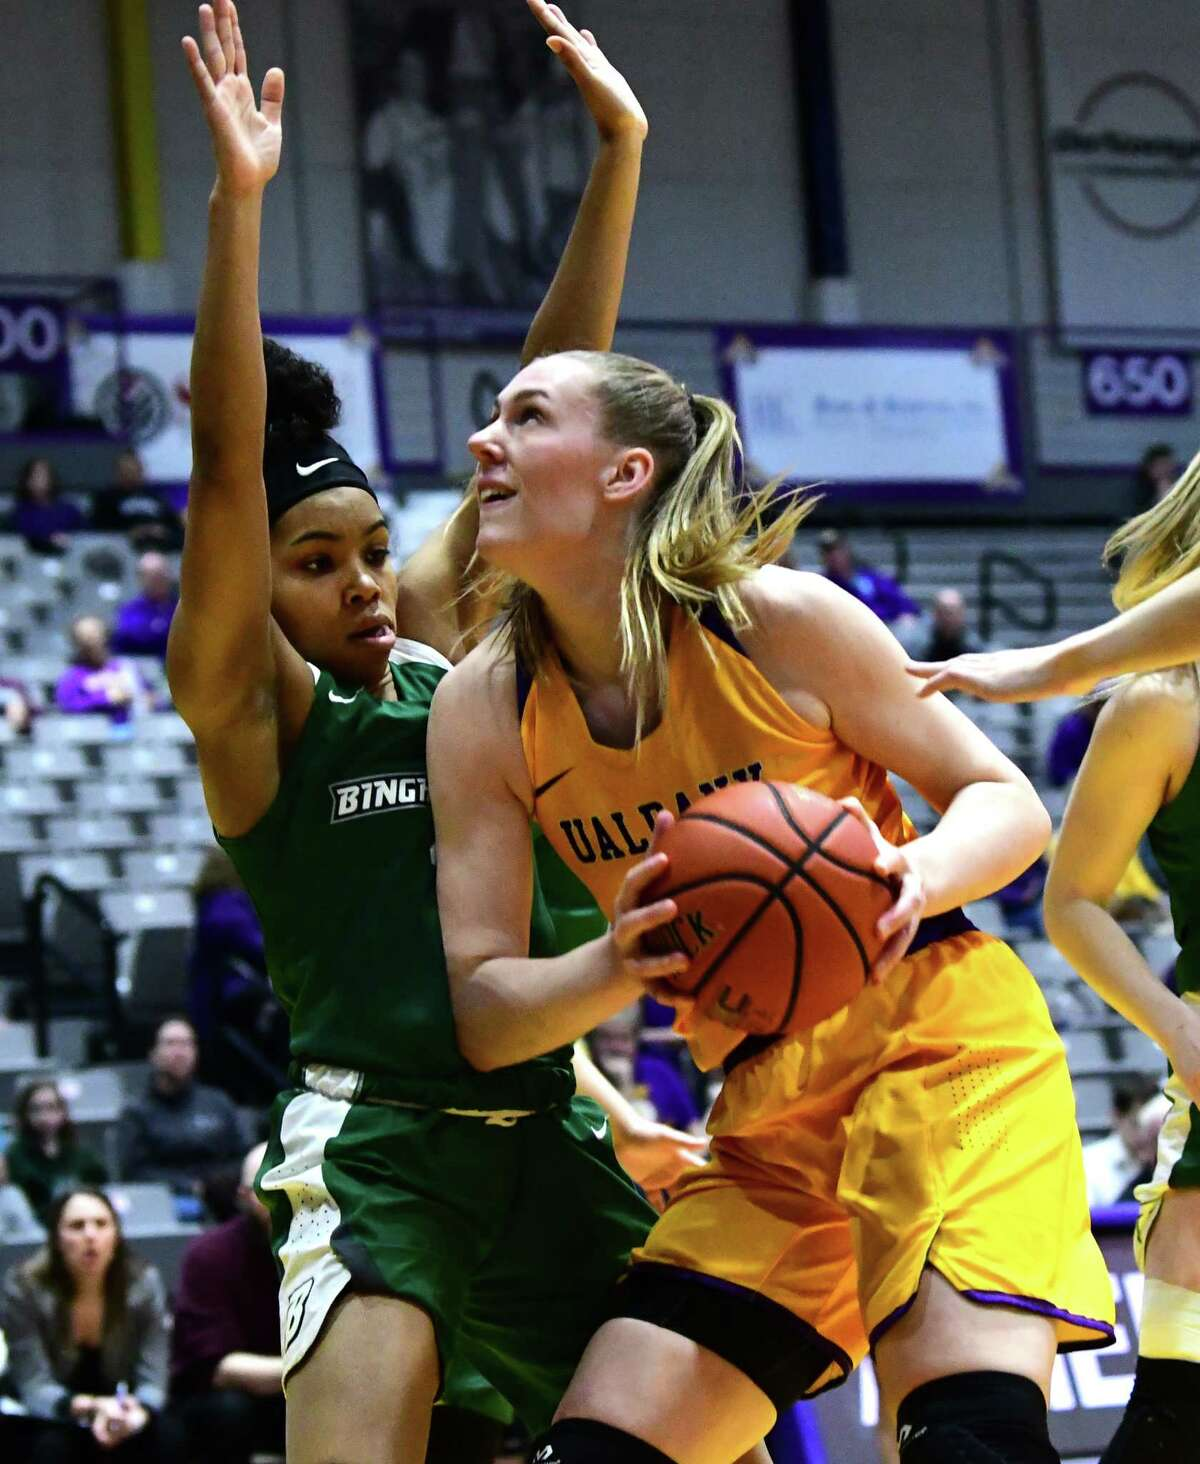 University at Albany's Amanda Kantzy drives to the net against Binghamton's Kai Moon during a basketball game at the SEFCU Arena on Wednesday, March 6, 2019 in Albany, N.Y. (Lori Van Buren/Times Union)